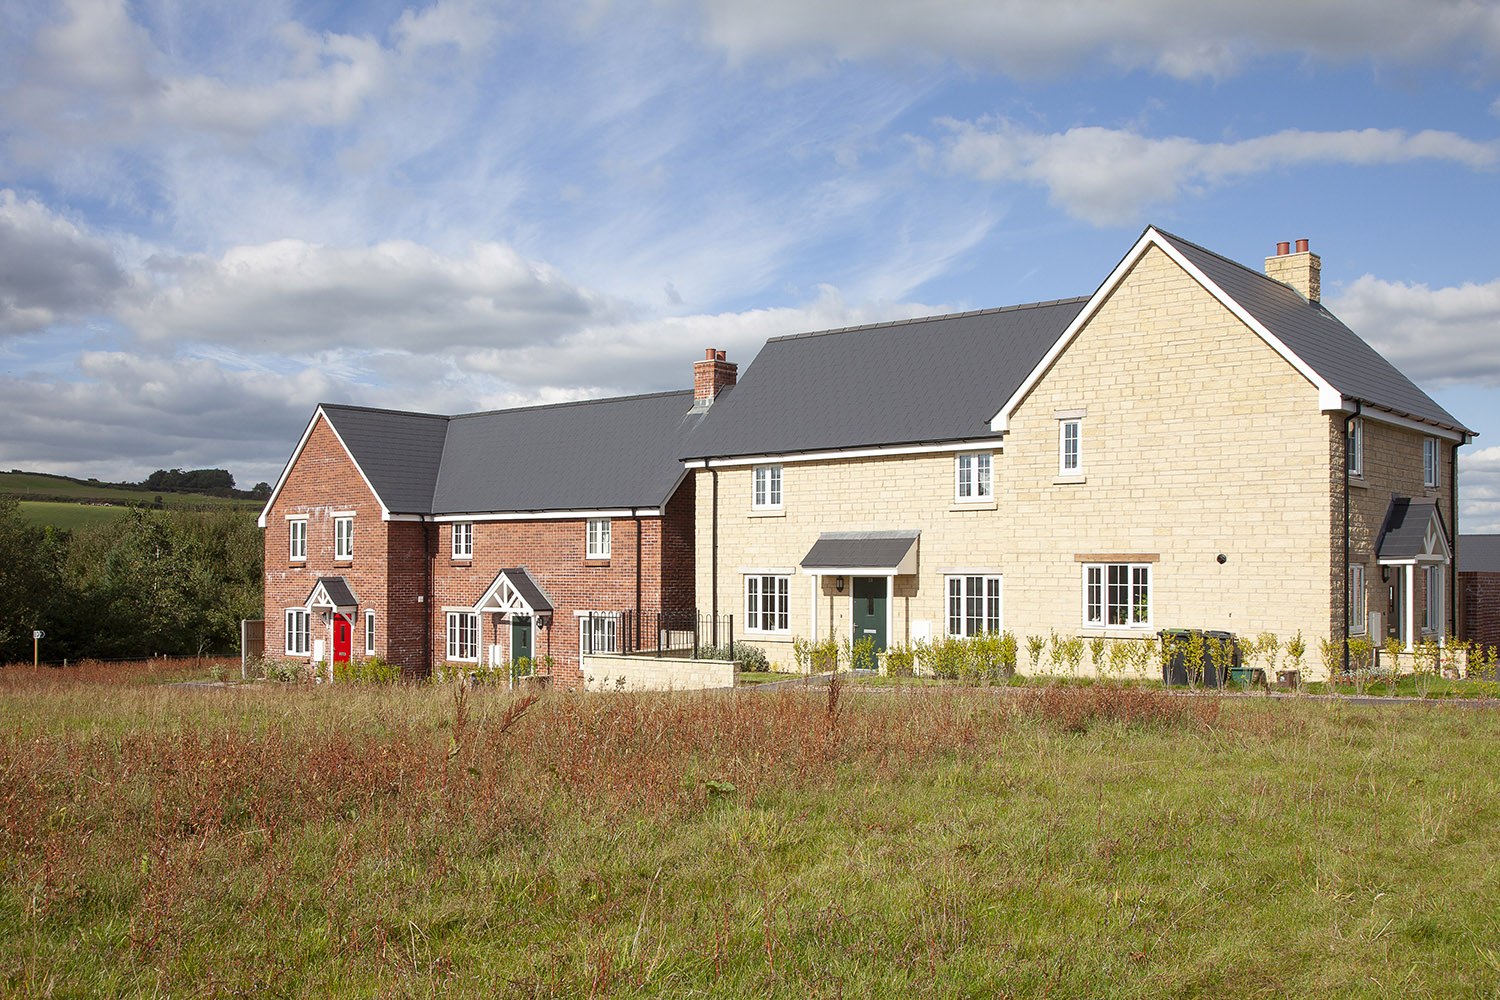 Kingspan chosen for new housing development